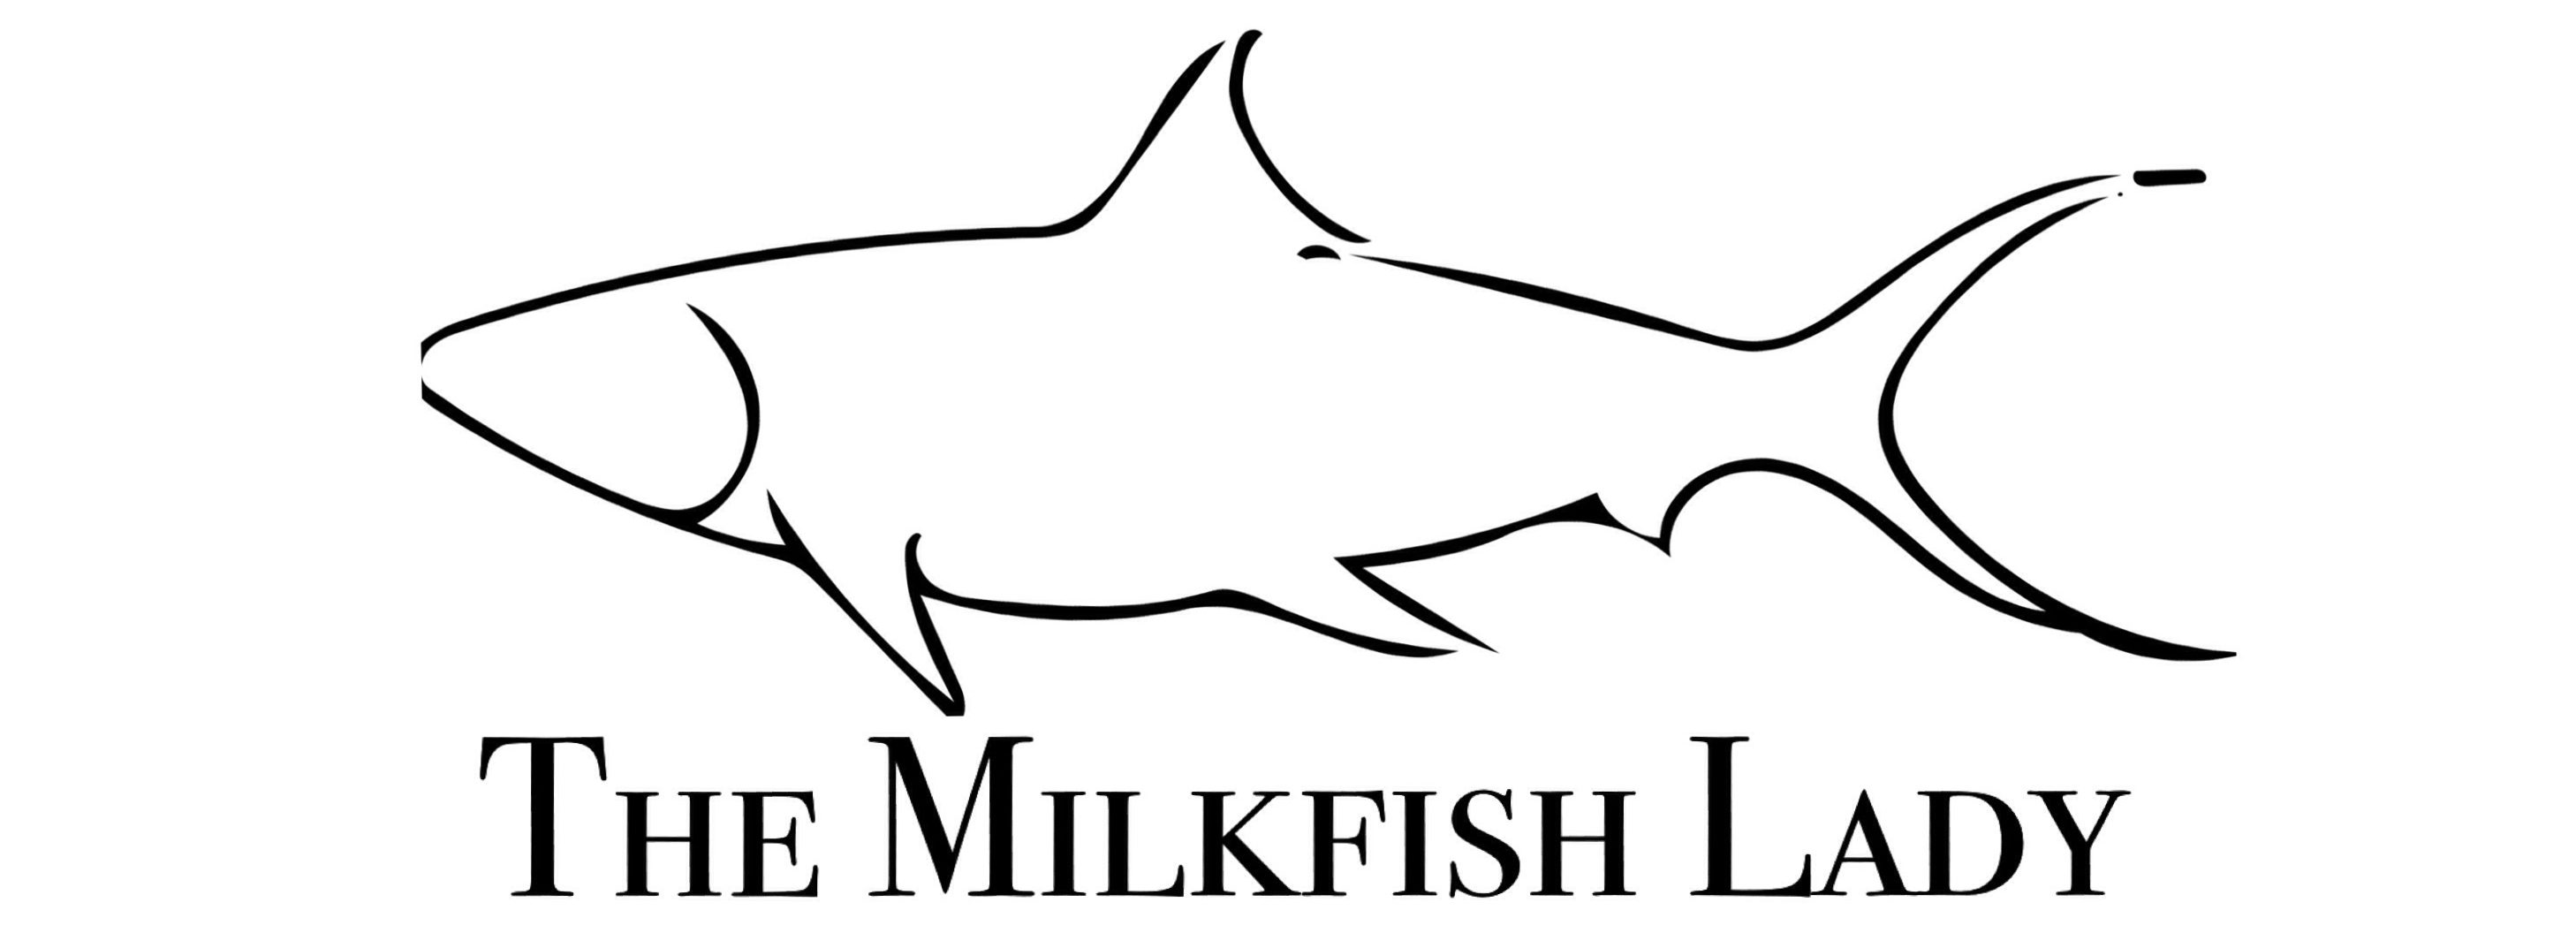 The Milkfish Lady Official Website